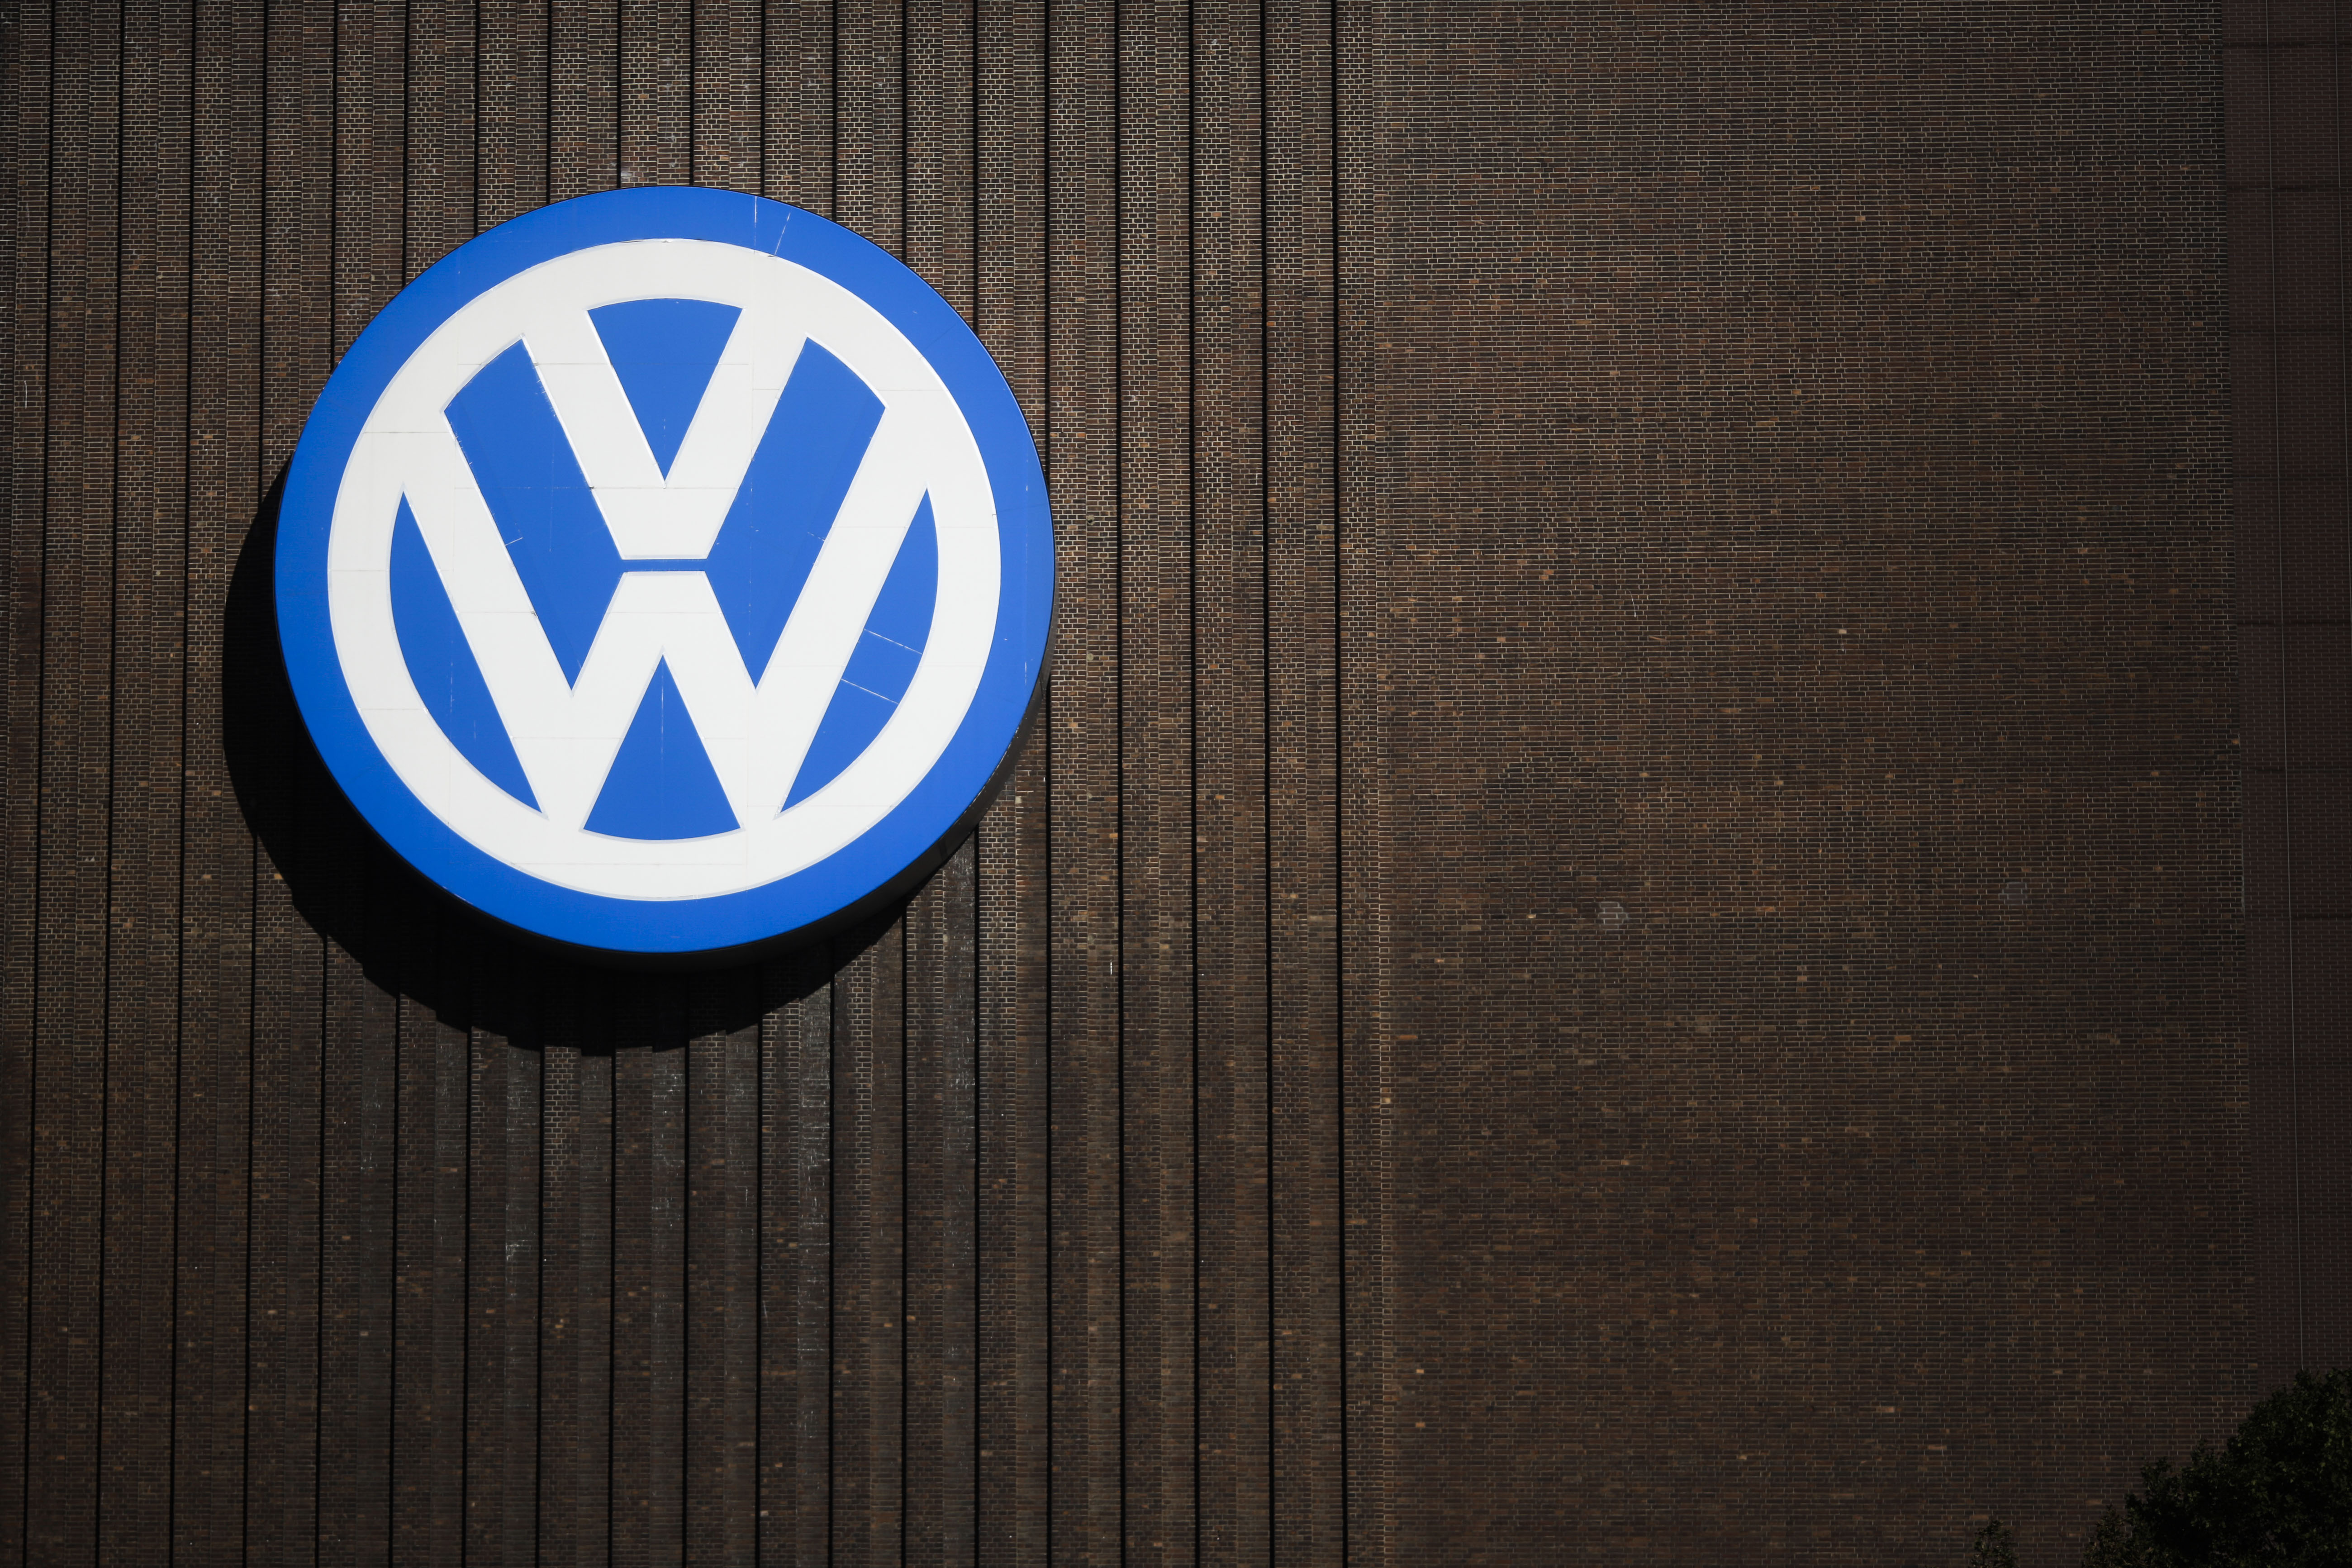 FILE - In this Sept. 29, 2015, file photo, a brand sign of the Volkswagen car company is seen at the car factory in Wolfsburg, Germany. More than a decade ago, the U.S. Environmental Protection Agency helped develop a technology that ultimately allowed an independent laboratory to catch Volkswagenu0092s elaborate cheating on car emissions tests. But EPA did not apply that technology on its own tests of diesel passenger cars and instead focused on trucks,thus missing its best chance to foil the German carmakeru0092s deception as early as 2007. (AP Photo/Markus Schreiber, File)